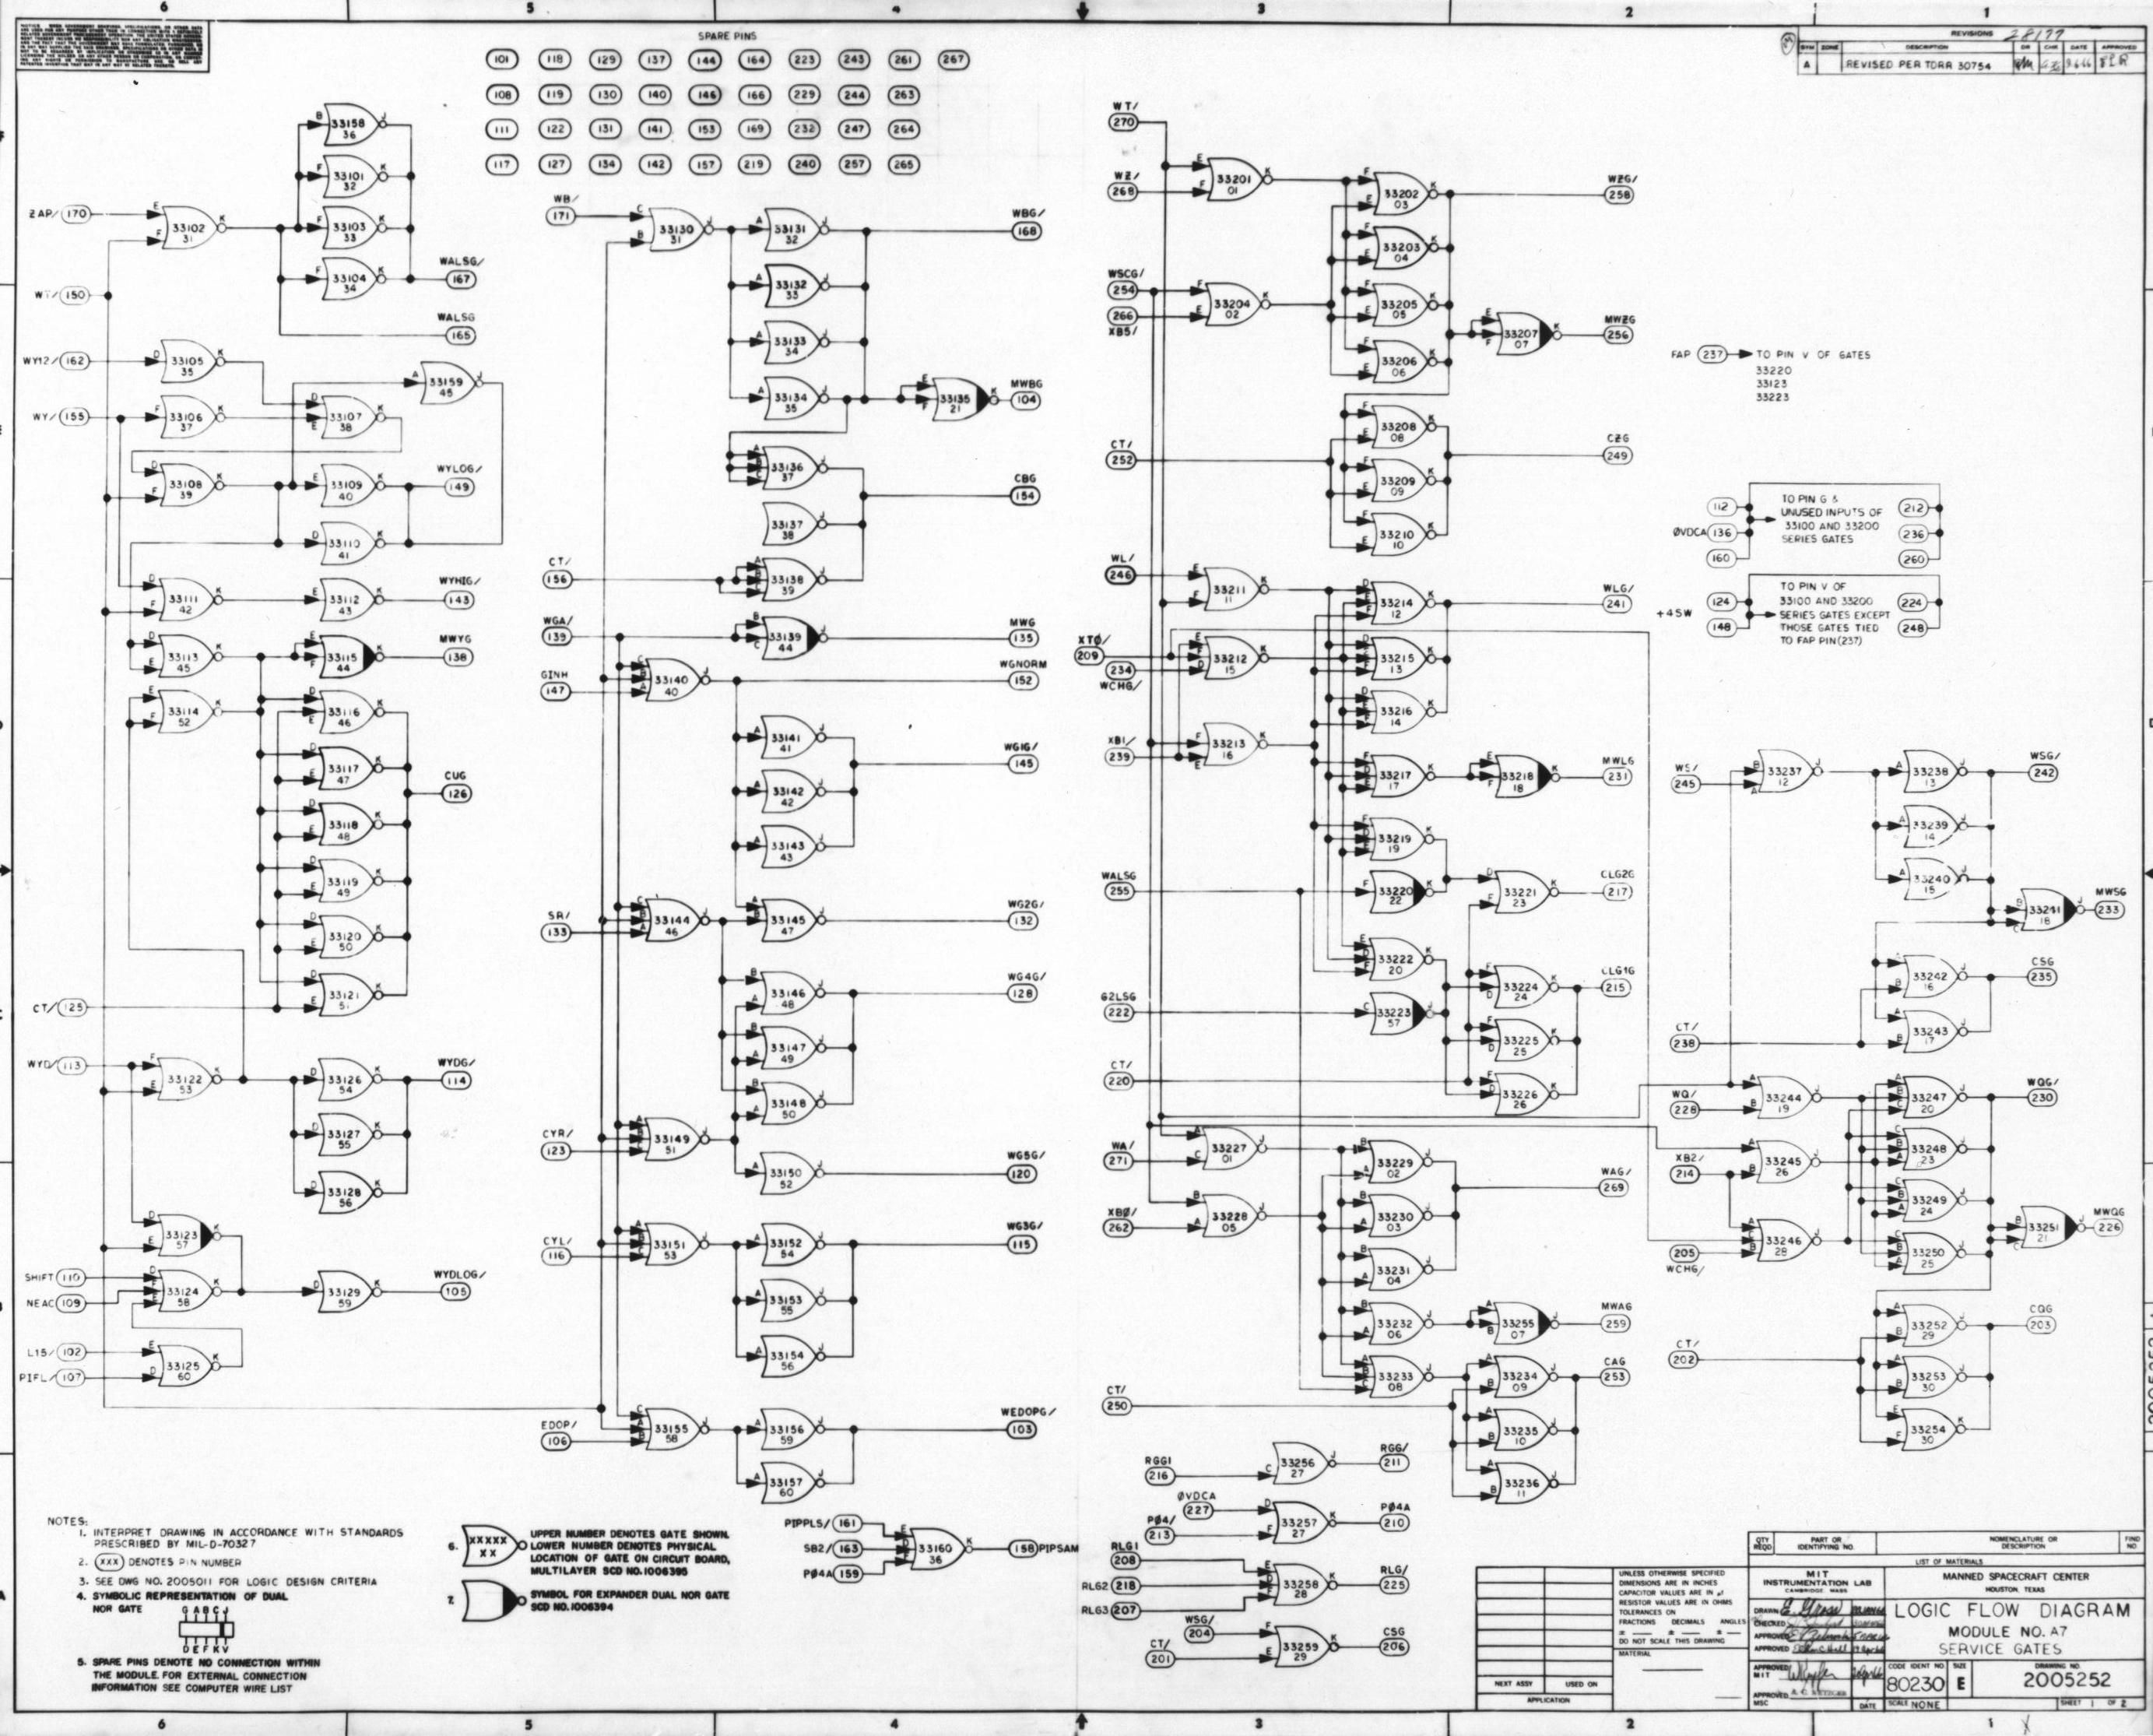 Super Logic Diagram Of Parity Generator Auto Electrical Wiring Diagram Wiring Cloud Licukaidewilluminateatxorg